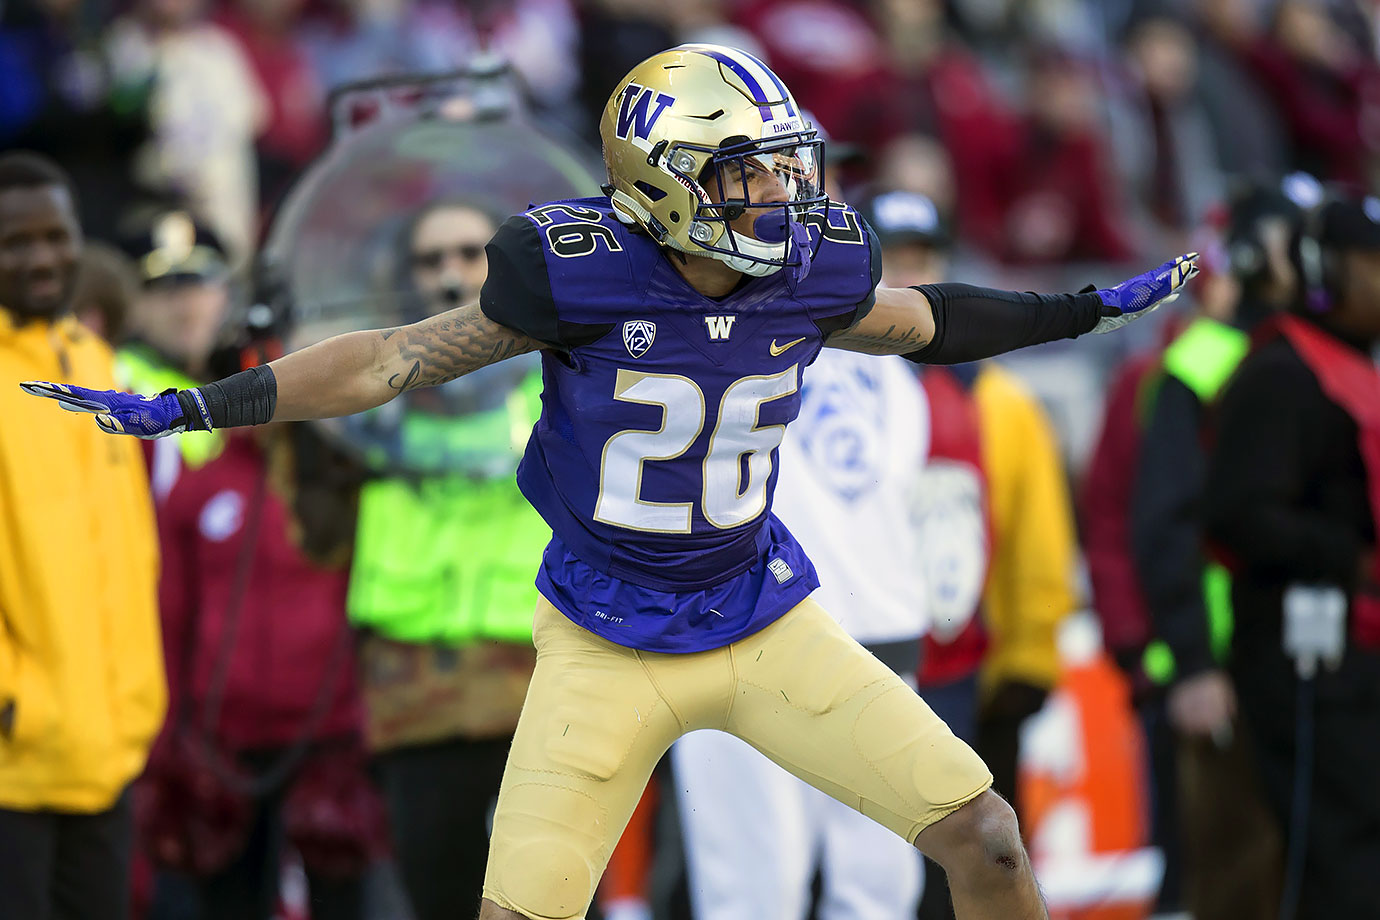 After totaling four interceptions (good for fourth in the Pac-12) in 2015, Jones was named first-team All-Pac-12. He's just one part of a loaded Washington secondary that boasts fellow first-team All-Pac-12 junior Budda Baker.